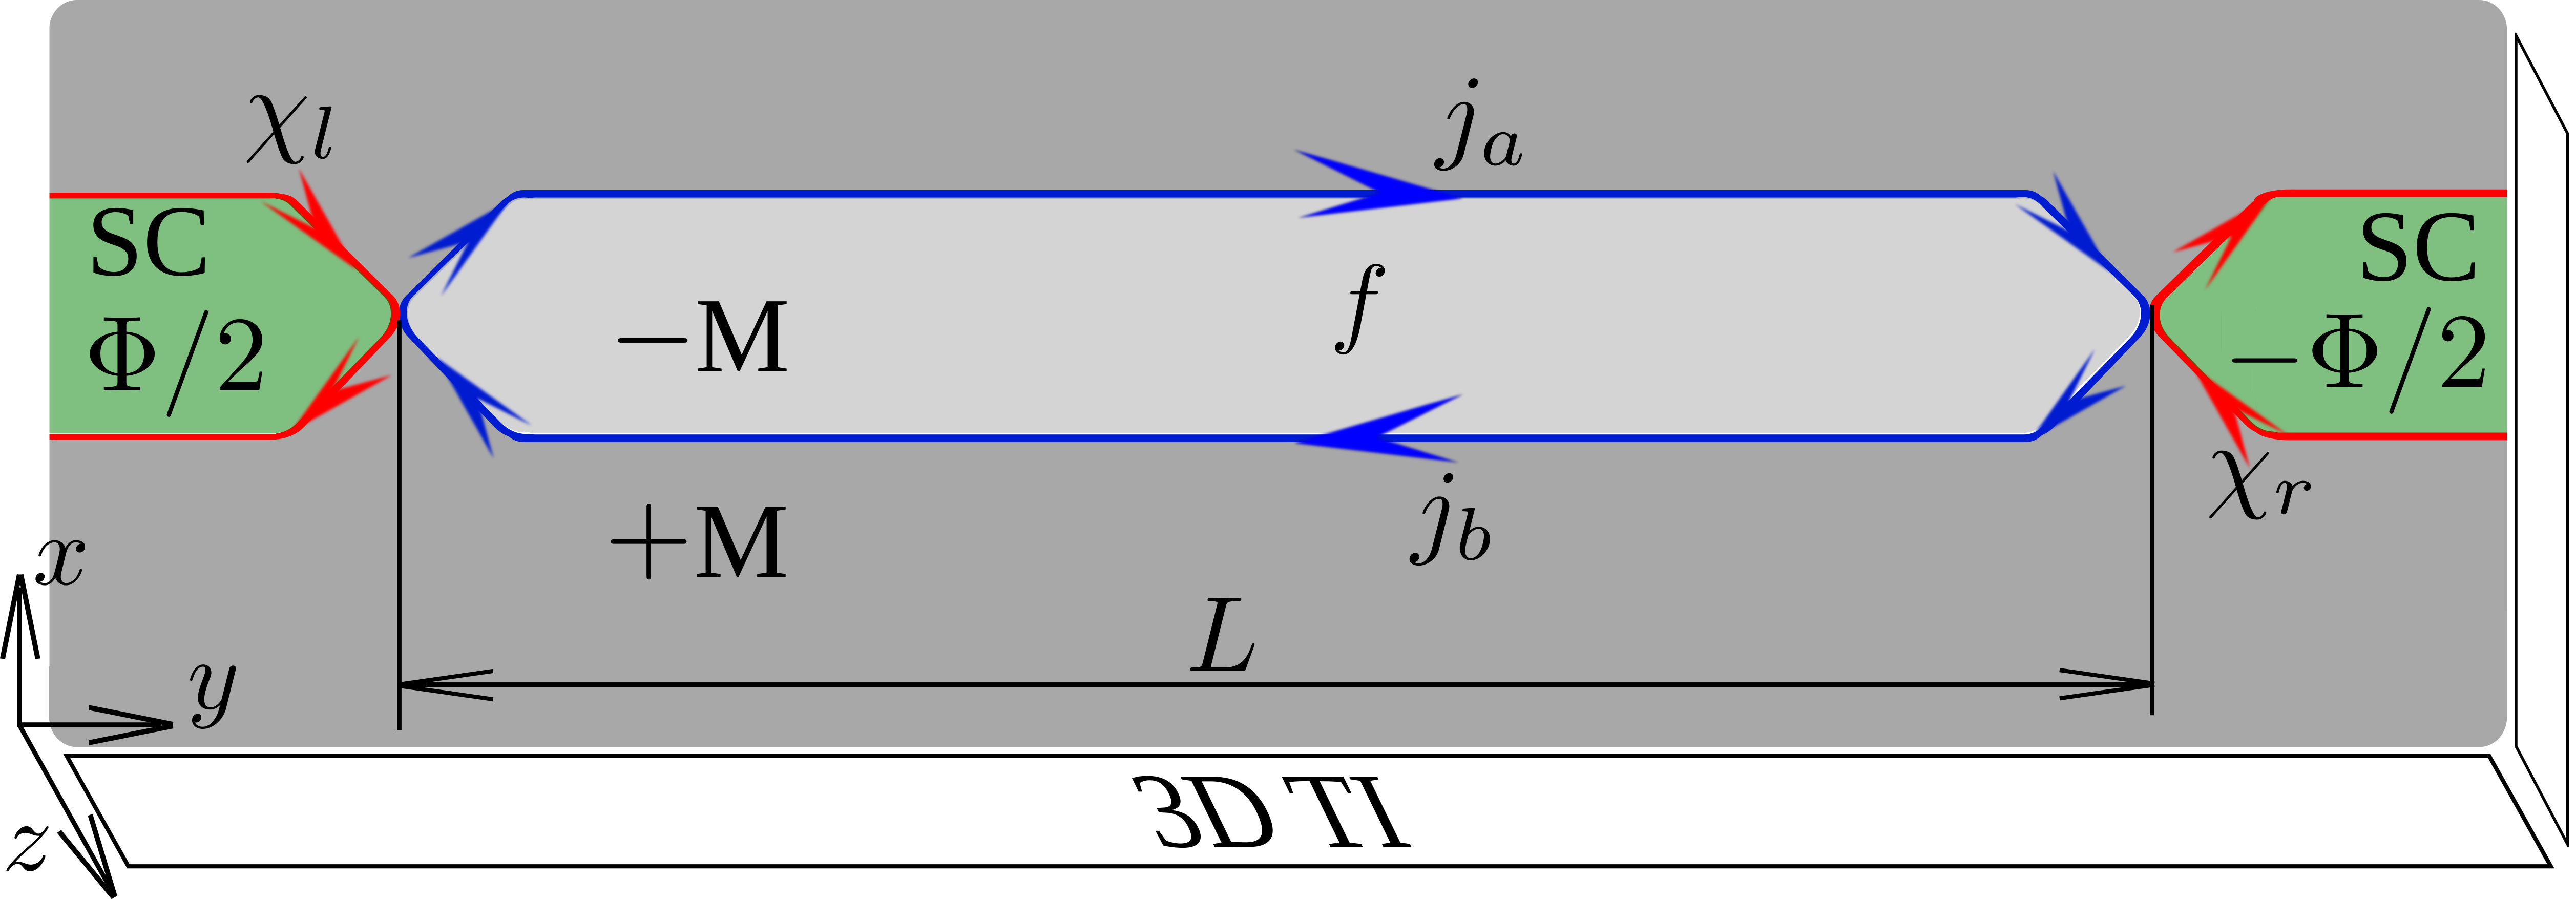 Scheme of the Josephson junction in the tunnelling regime.